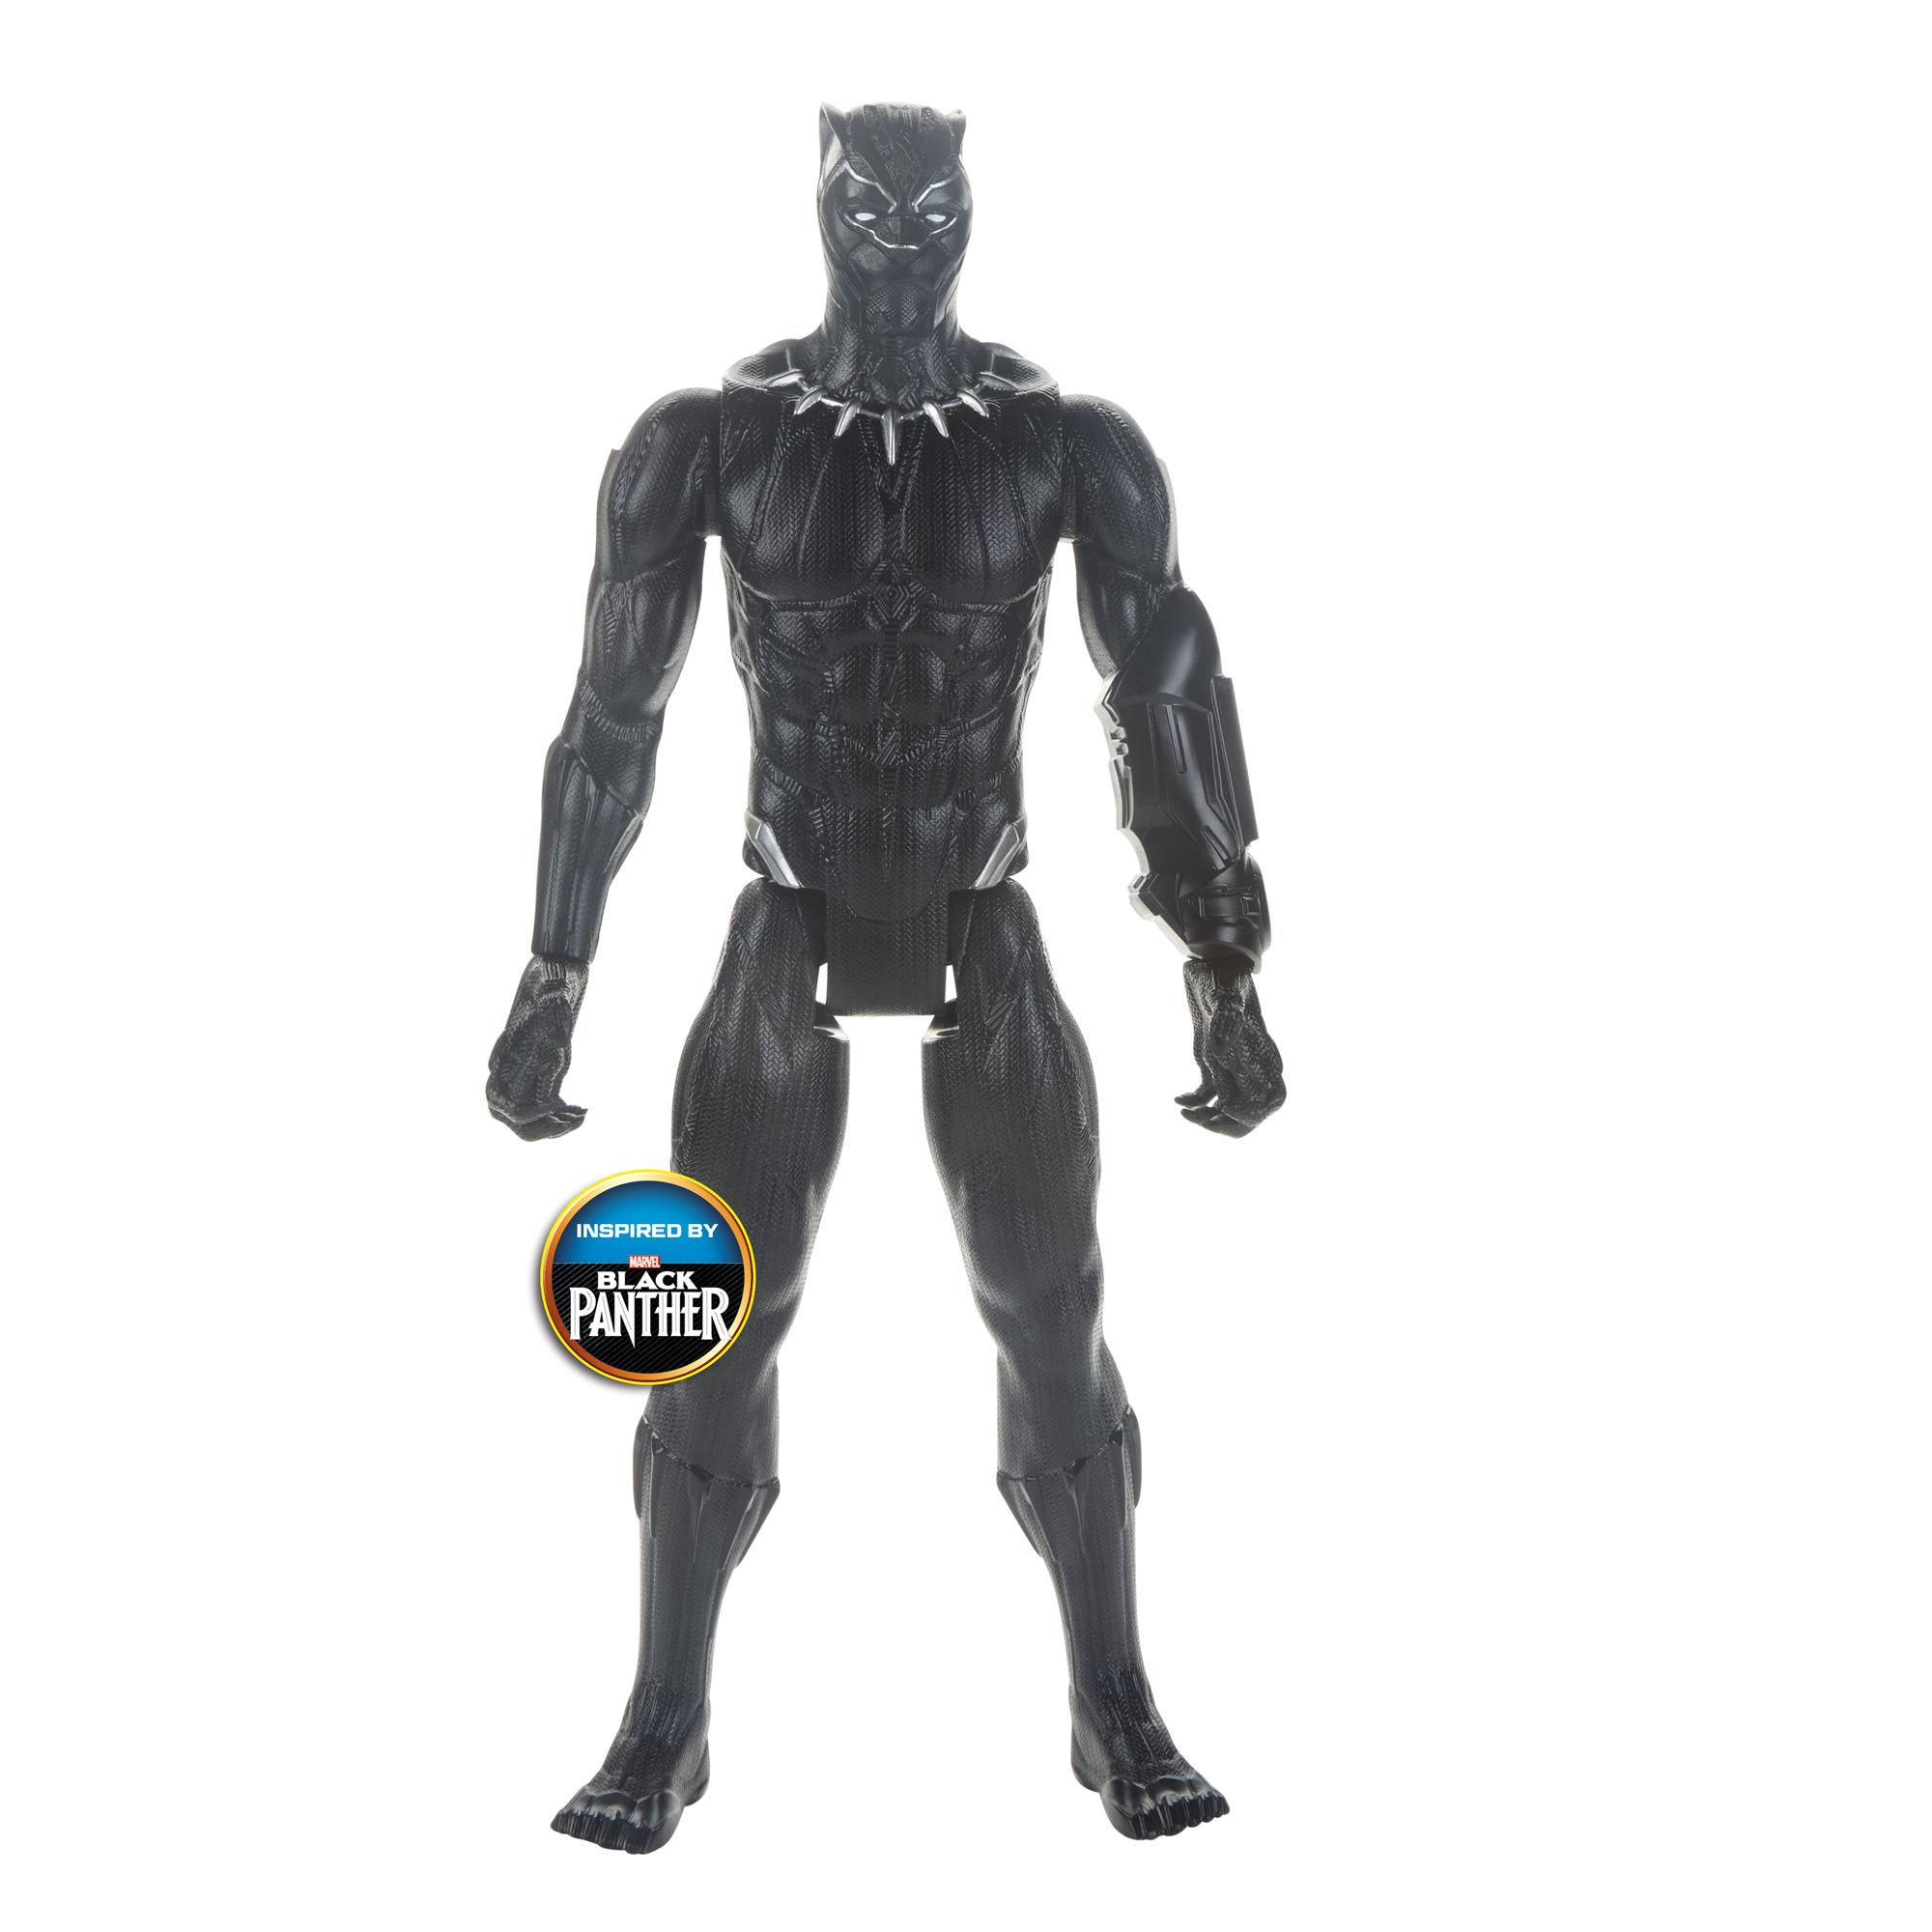 Avengers Titan Hero Black Panther